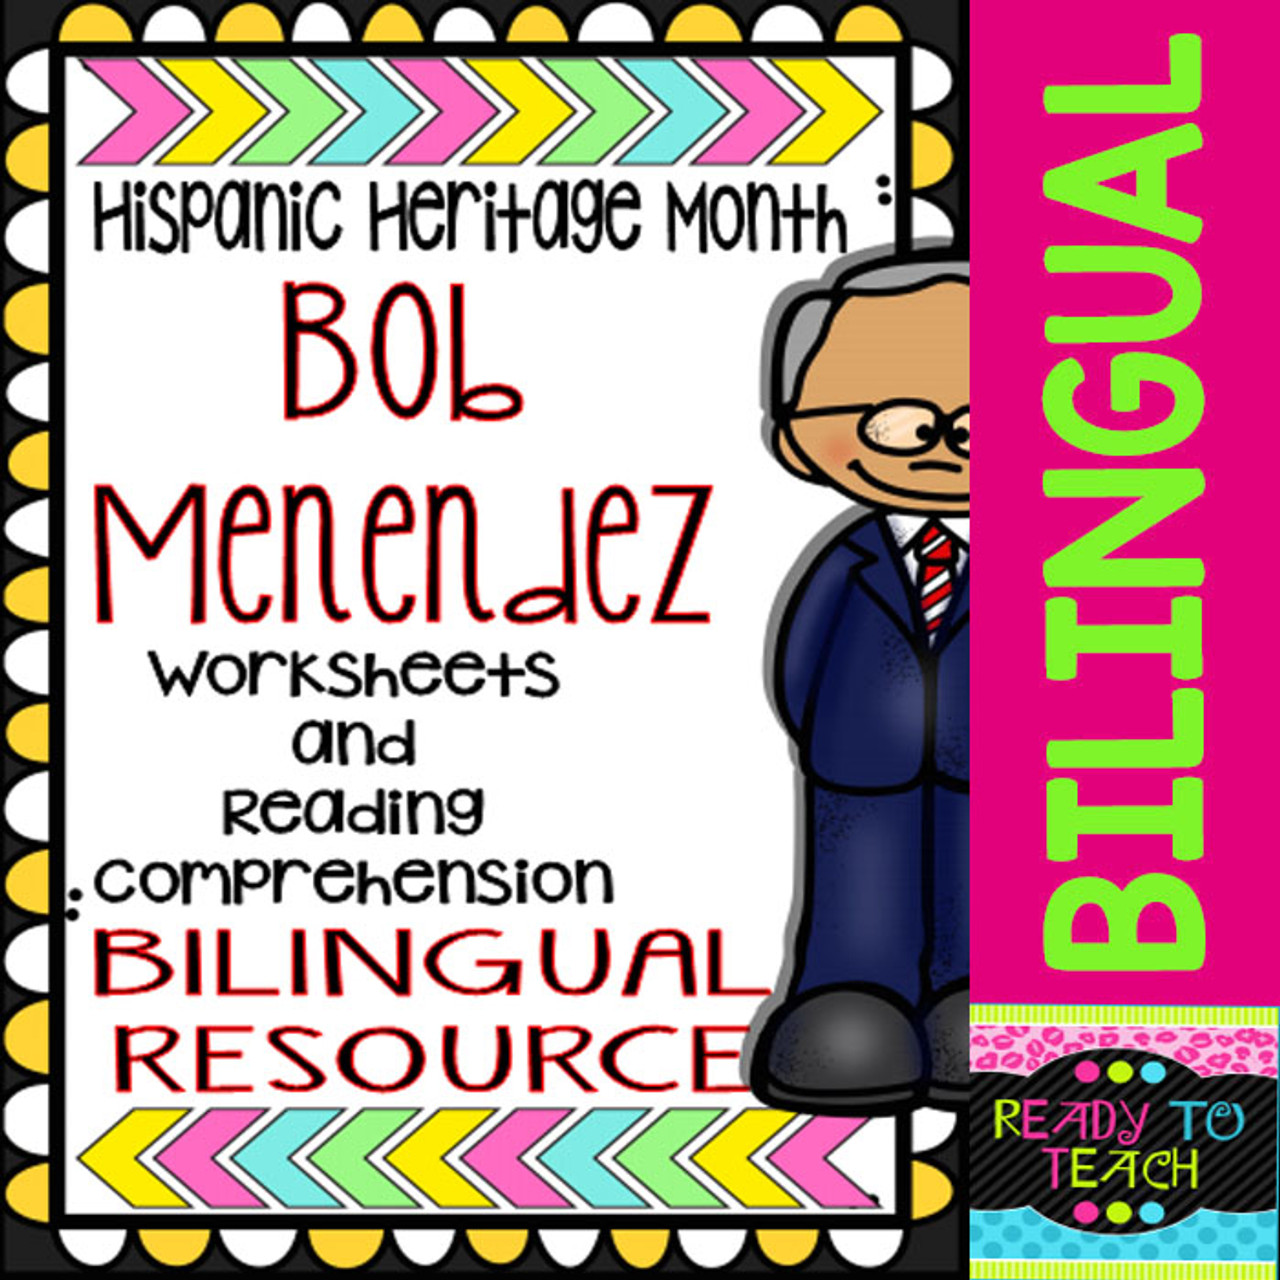 small resolution of Hispanic Heritage Month - Bob Menendez - Worksheets and Readings (Bilingual)  - Amped Up Learning